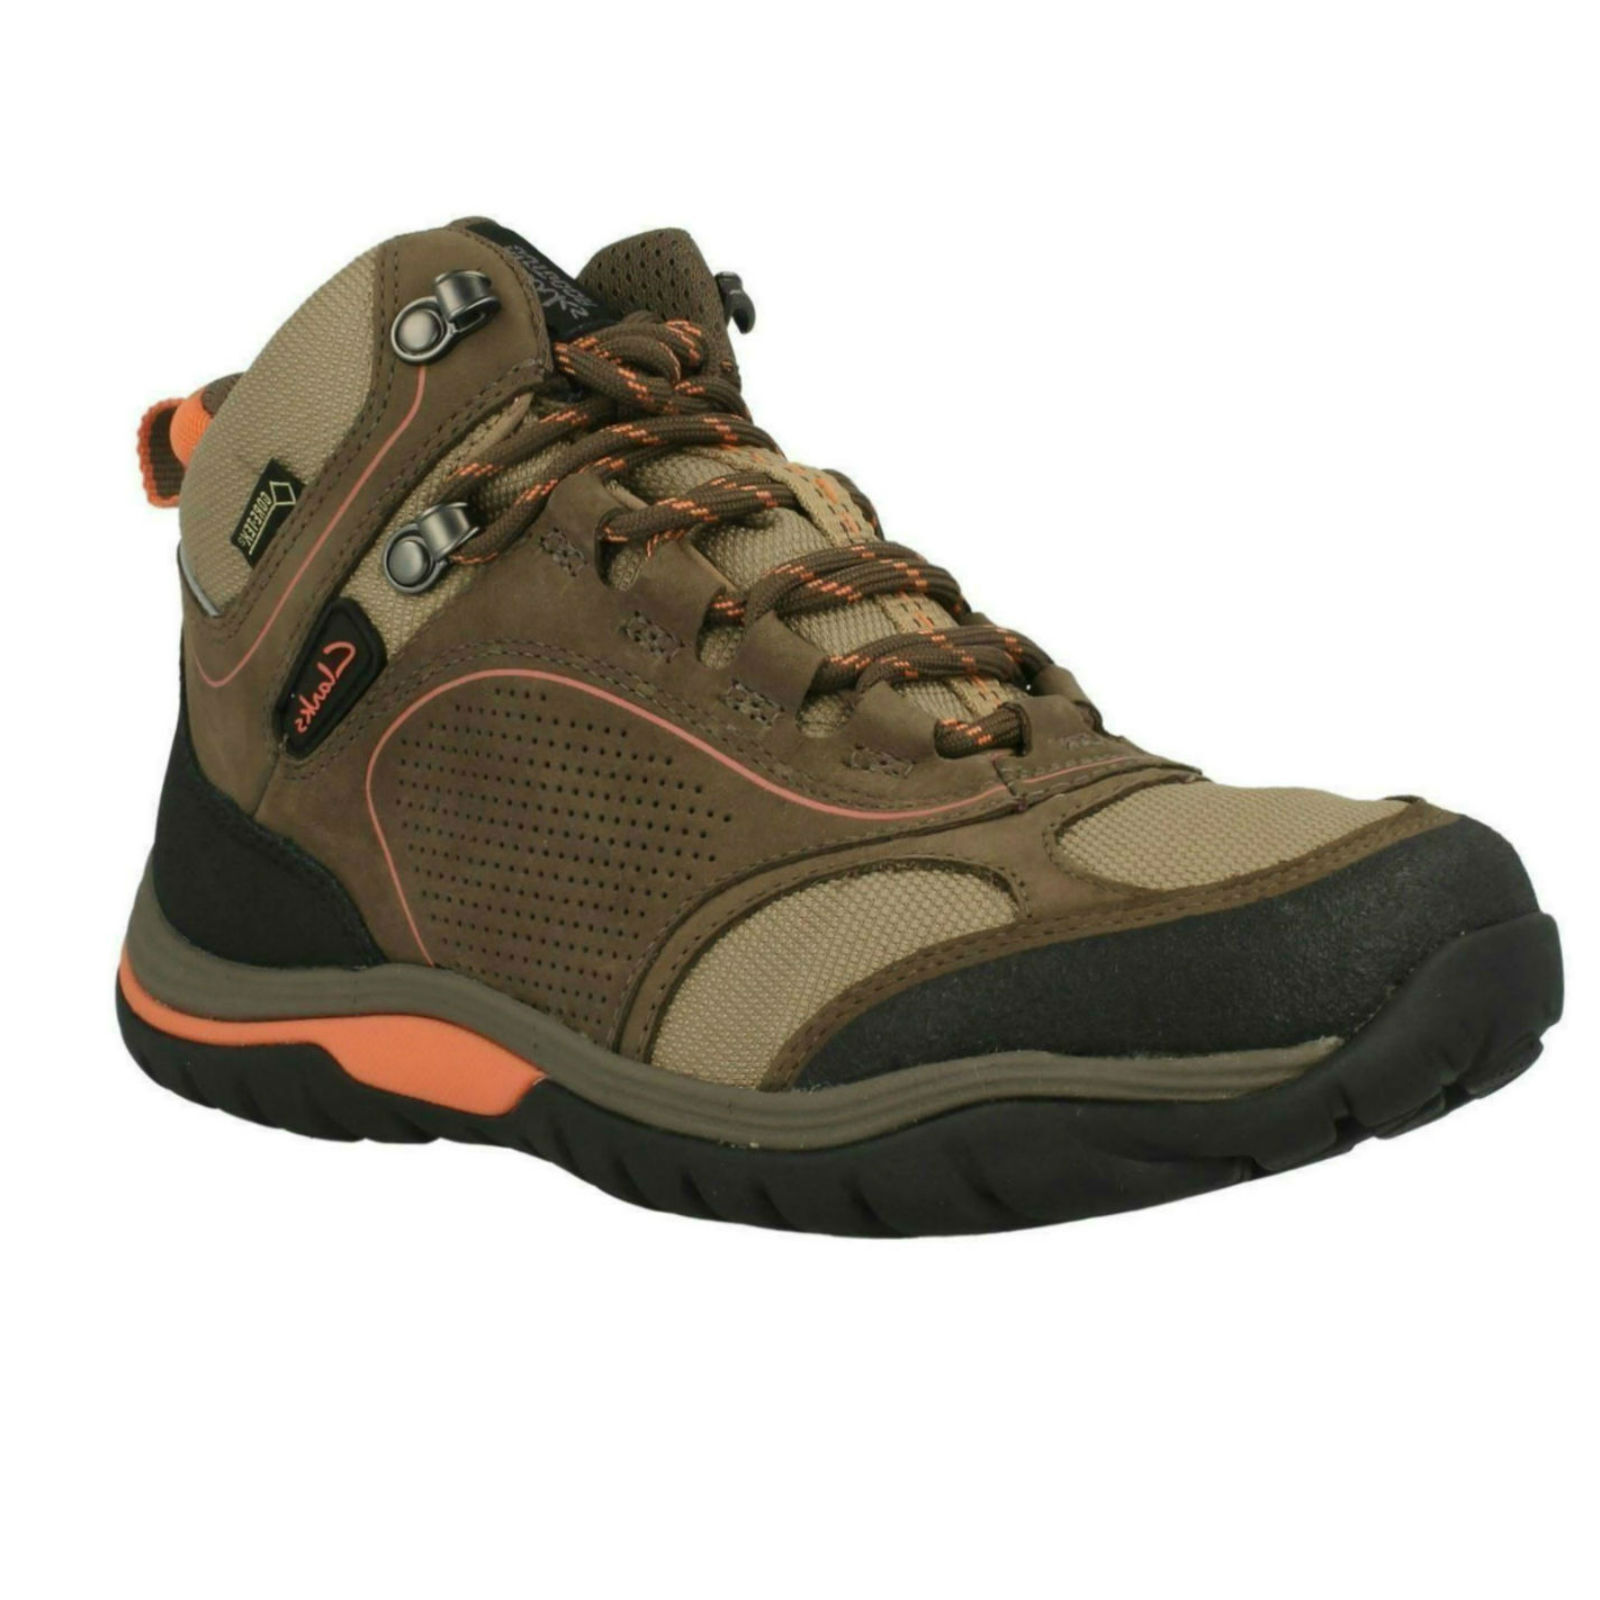 INTOUR ROUTE GTX LADIES CLARKS LACE UP NUBUCK GORE TEX Stiefel WALKING WATERPROOF Stiefel TEX b9db0d